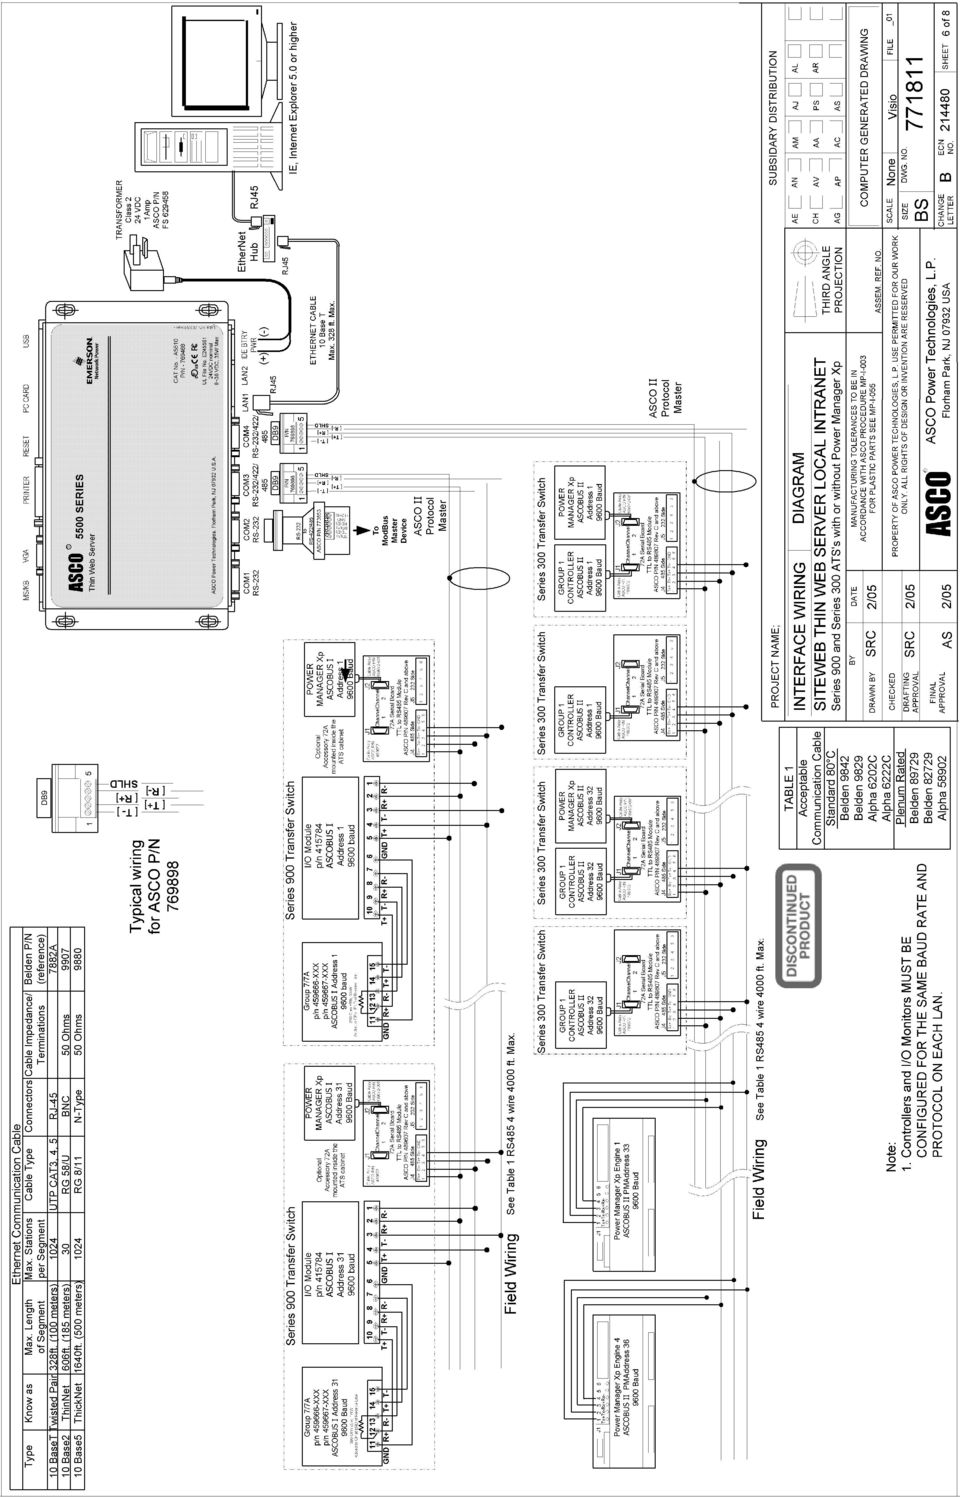 120 Vac To 24 Transformer Wiring Diagram, 120, Get Free